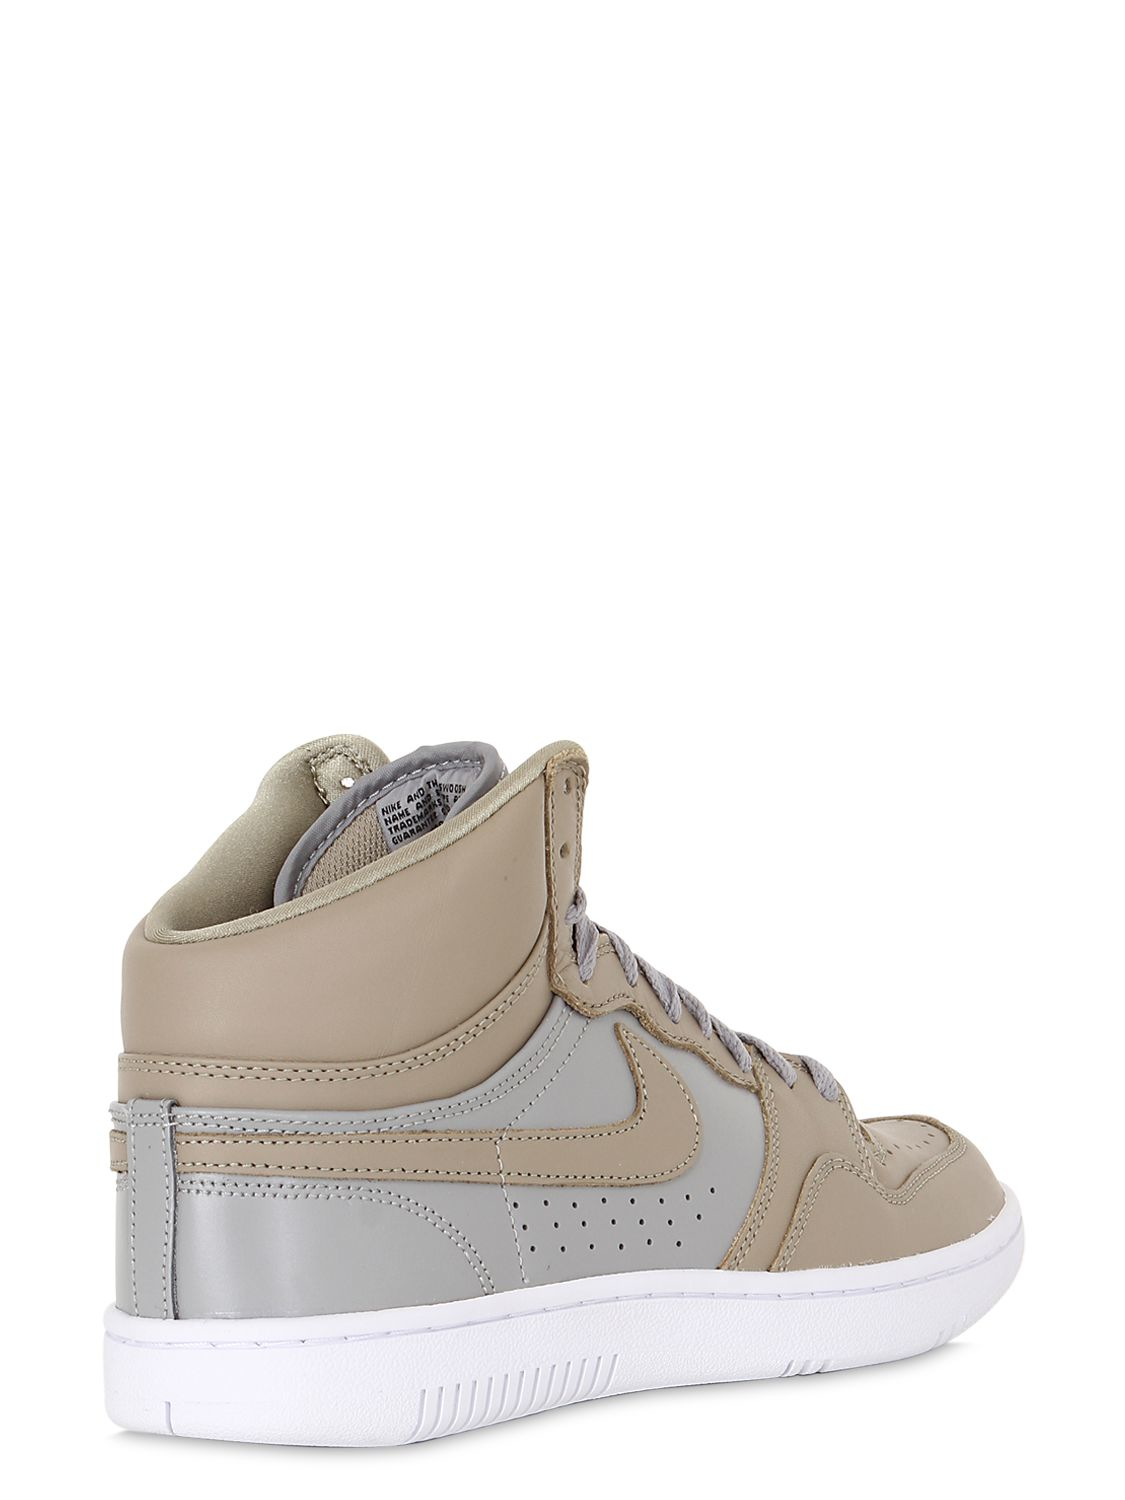 Lyst - Nike Undercover Court Force High Top Sneakers in ...